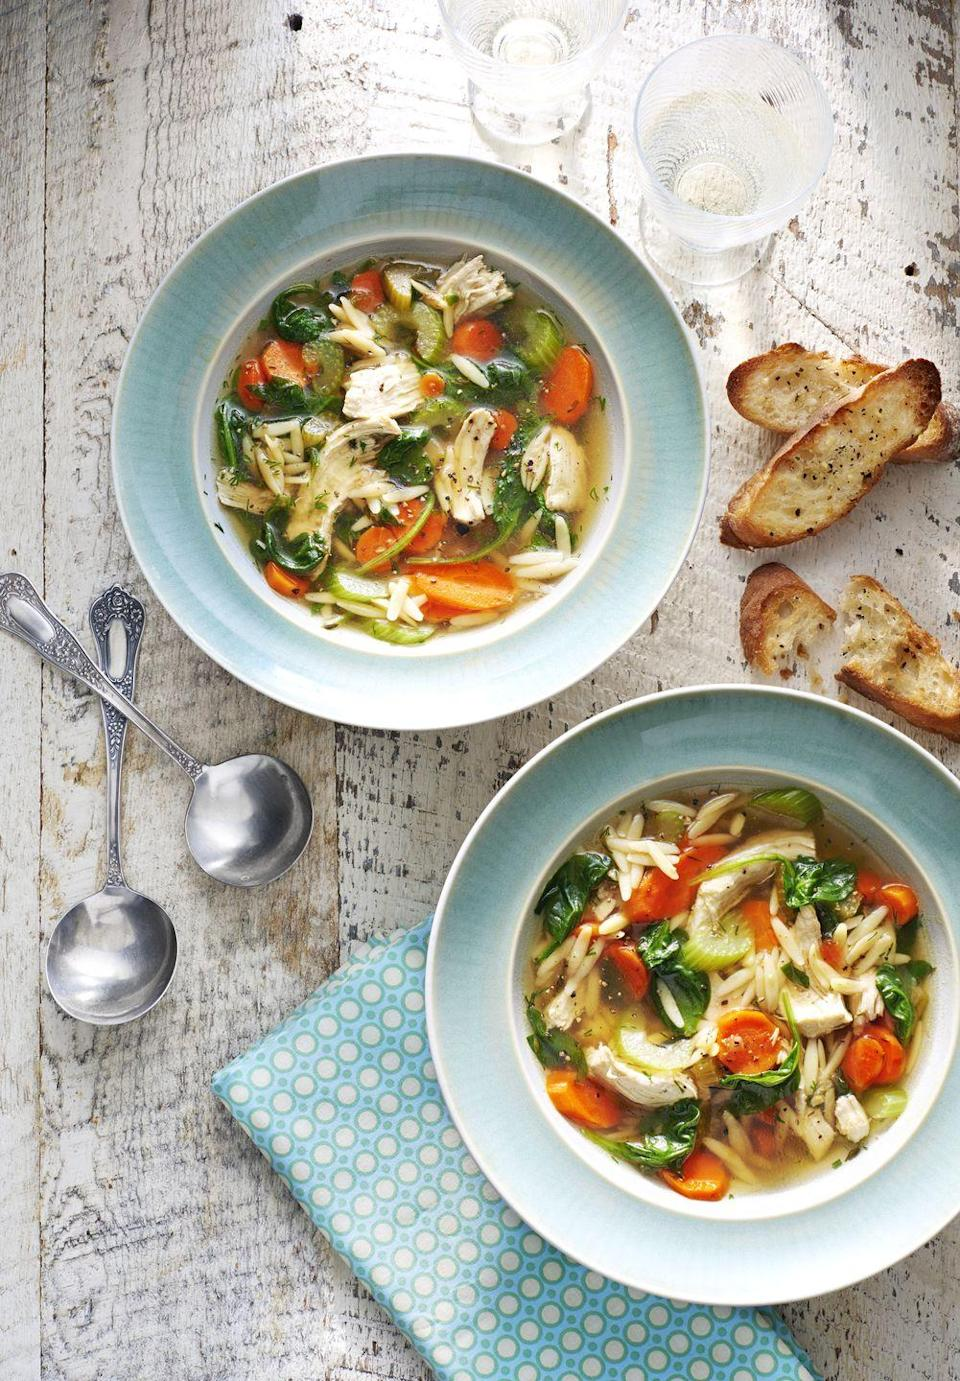 "<p>This chicken soup is sure to warm hearts and stomachs. Serve it with our easy recipe for garlic toast.</p><p><strong><a href=""https://www.countryliving.com/food-drinks/recipes/a190/lemony-chicken-dill-soup-recipe-clx0315/"" rel=""nofollow noopener"" target=""_blank"" data-ylk=""slk:Get the recipe."" class=""link rapid-noclick-resp"">Get the recipe.</a></strong></p>"